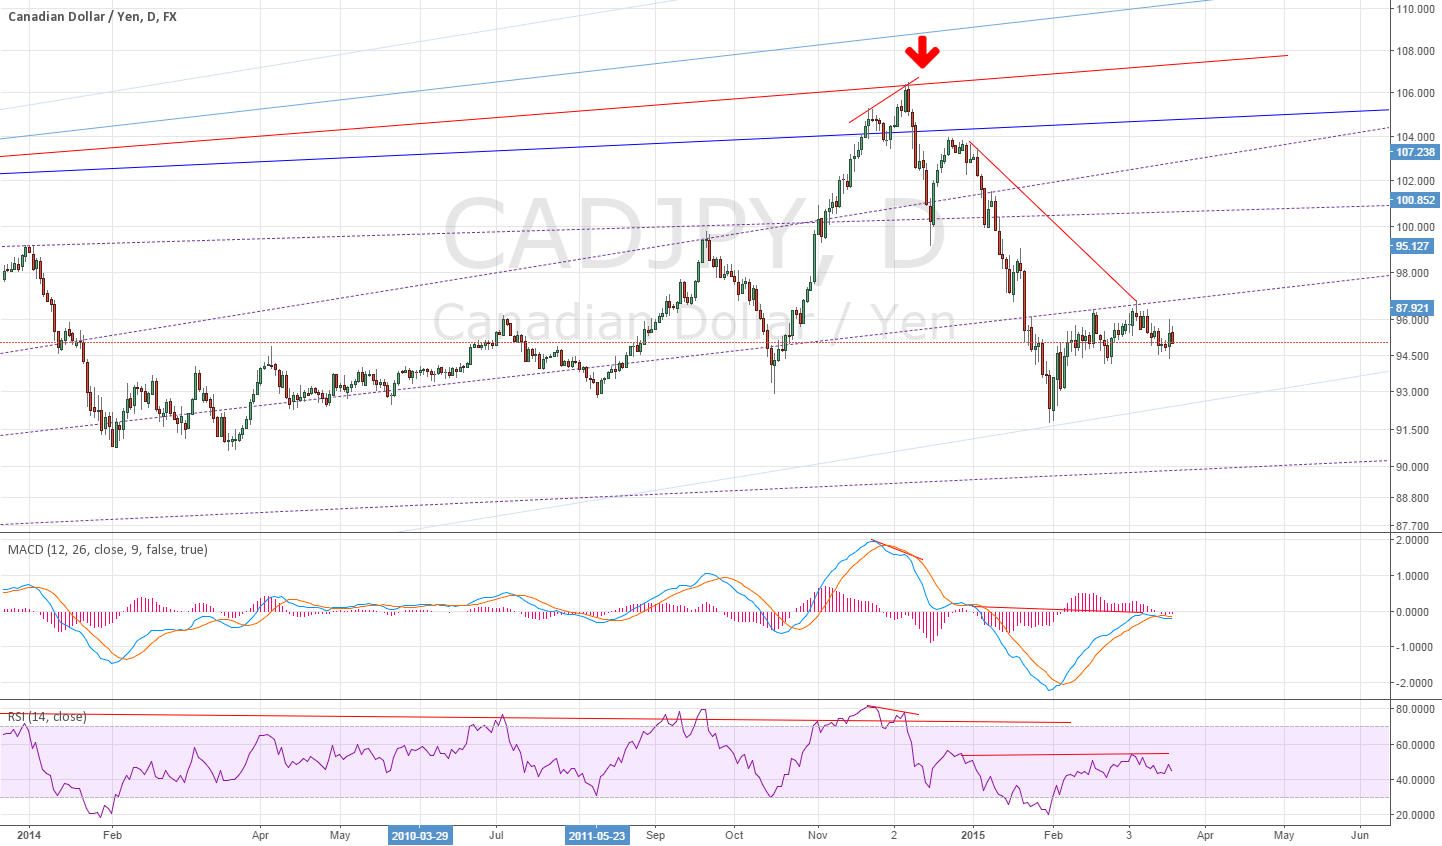 Daily for CADJPY divergence ~